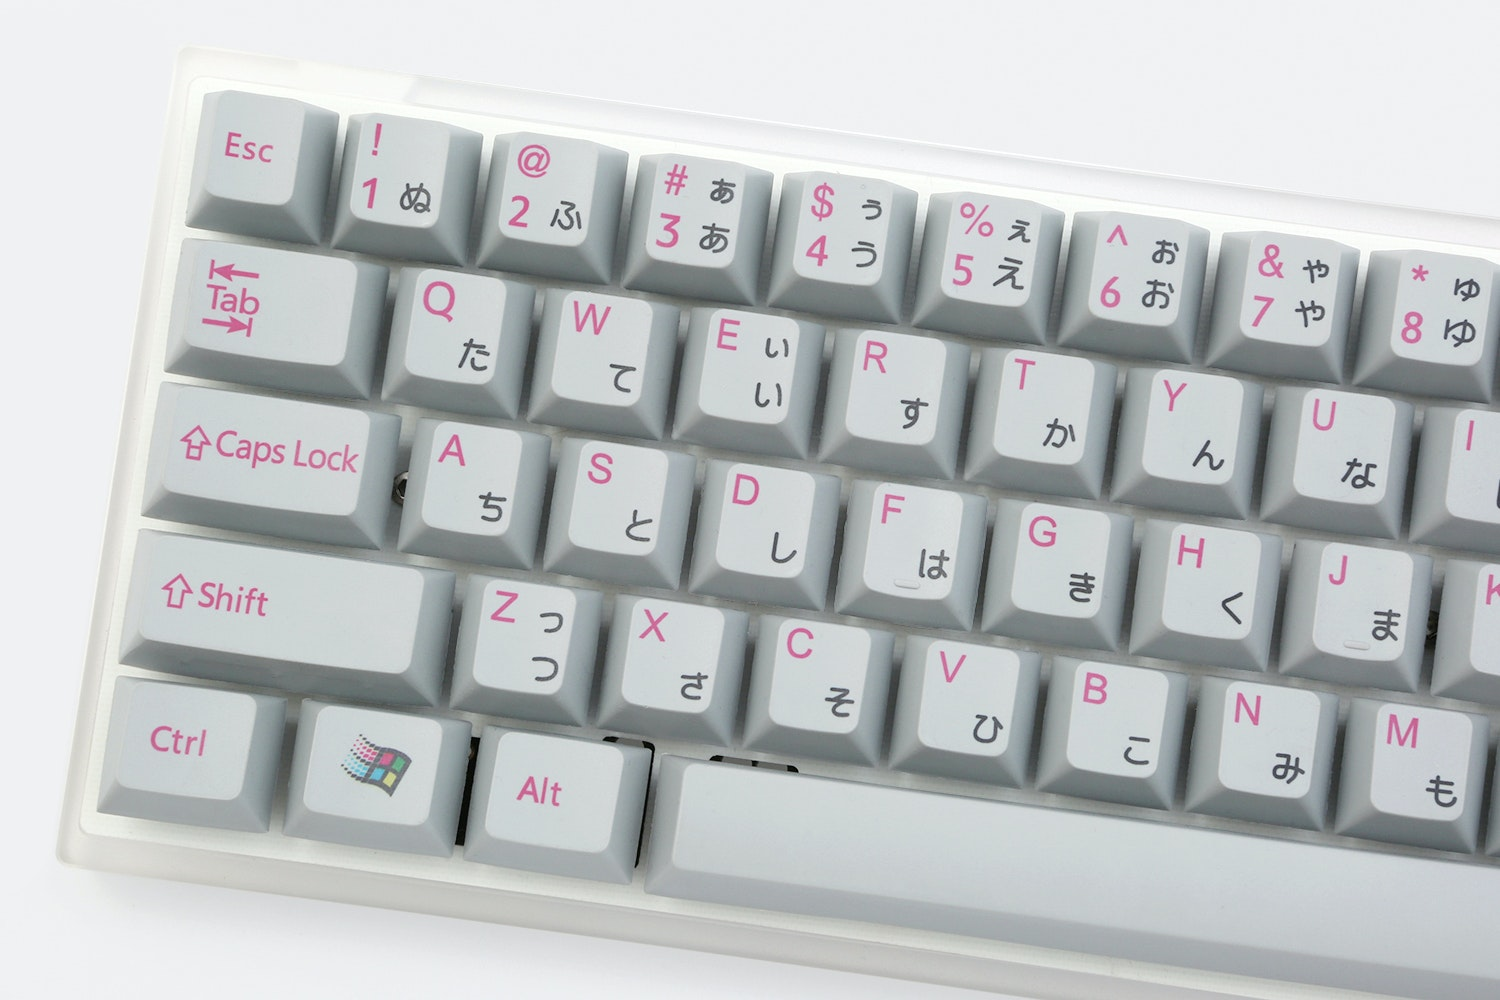 Japanese Alphabet Cherry PBT Dye-Subbed Keycap Set